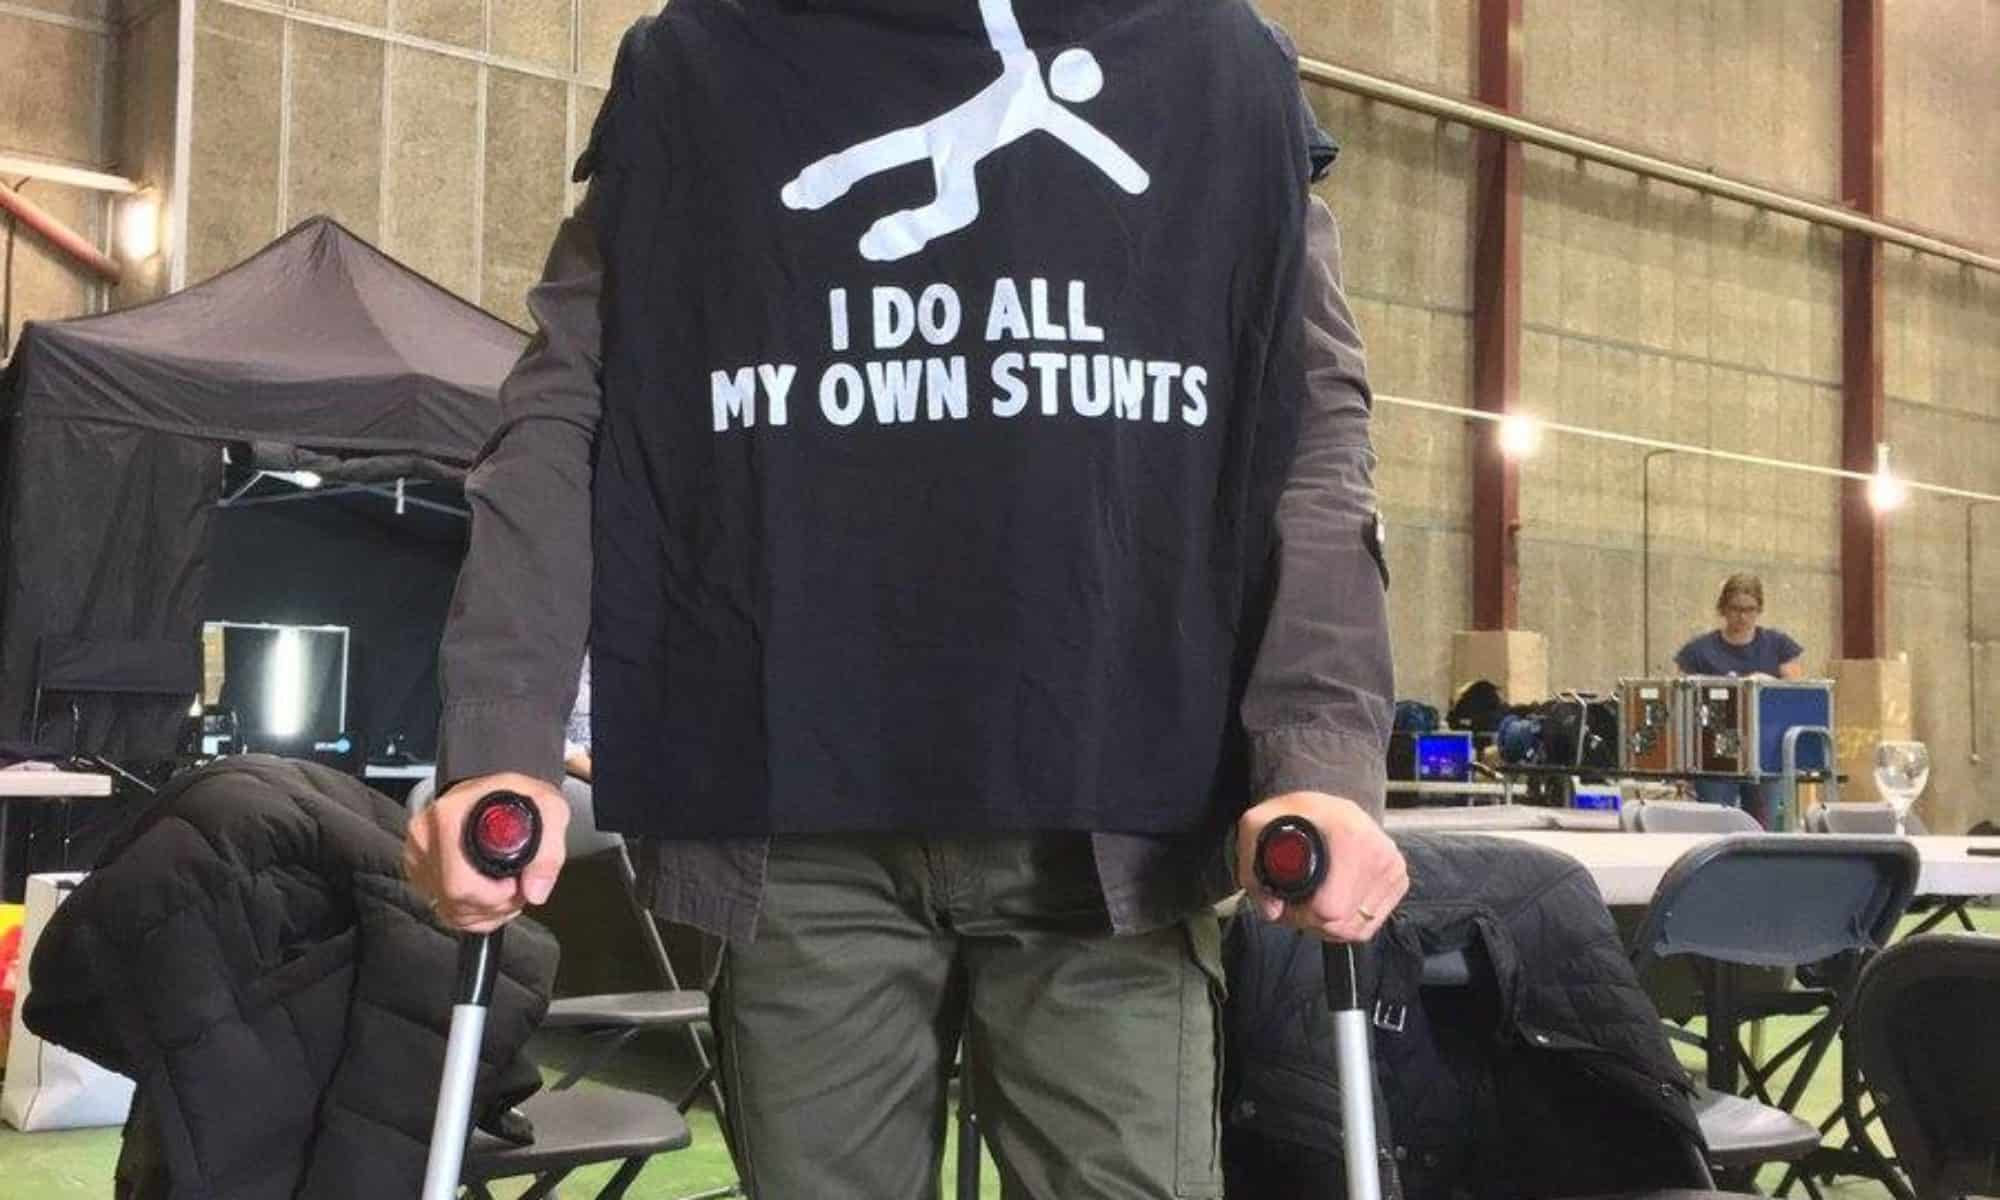 [GagGalerie #28] I do all my own stunts